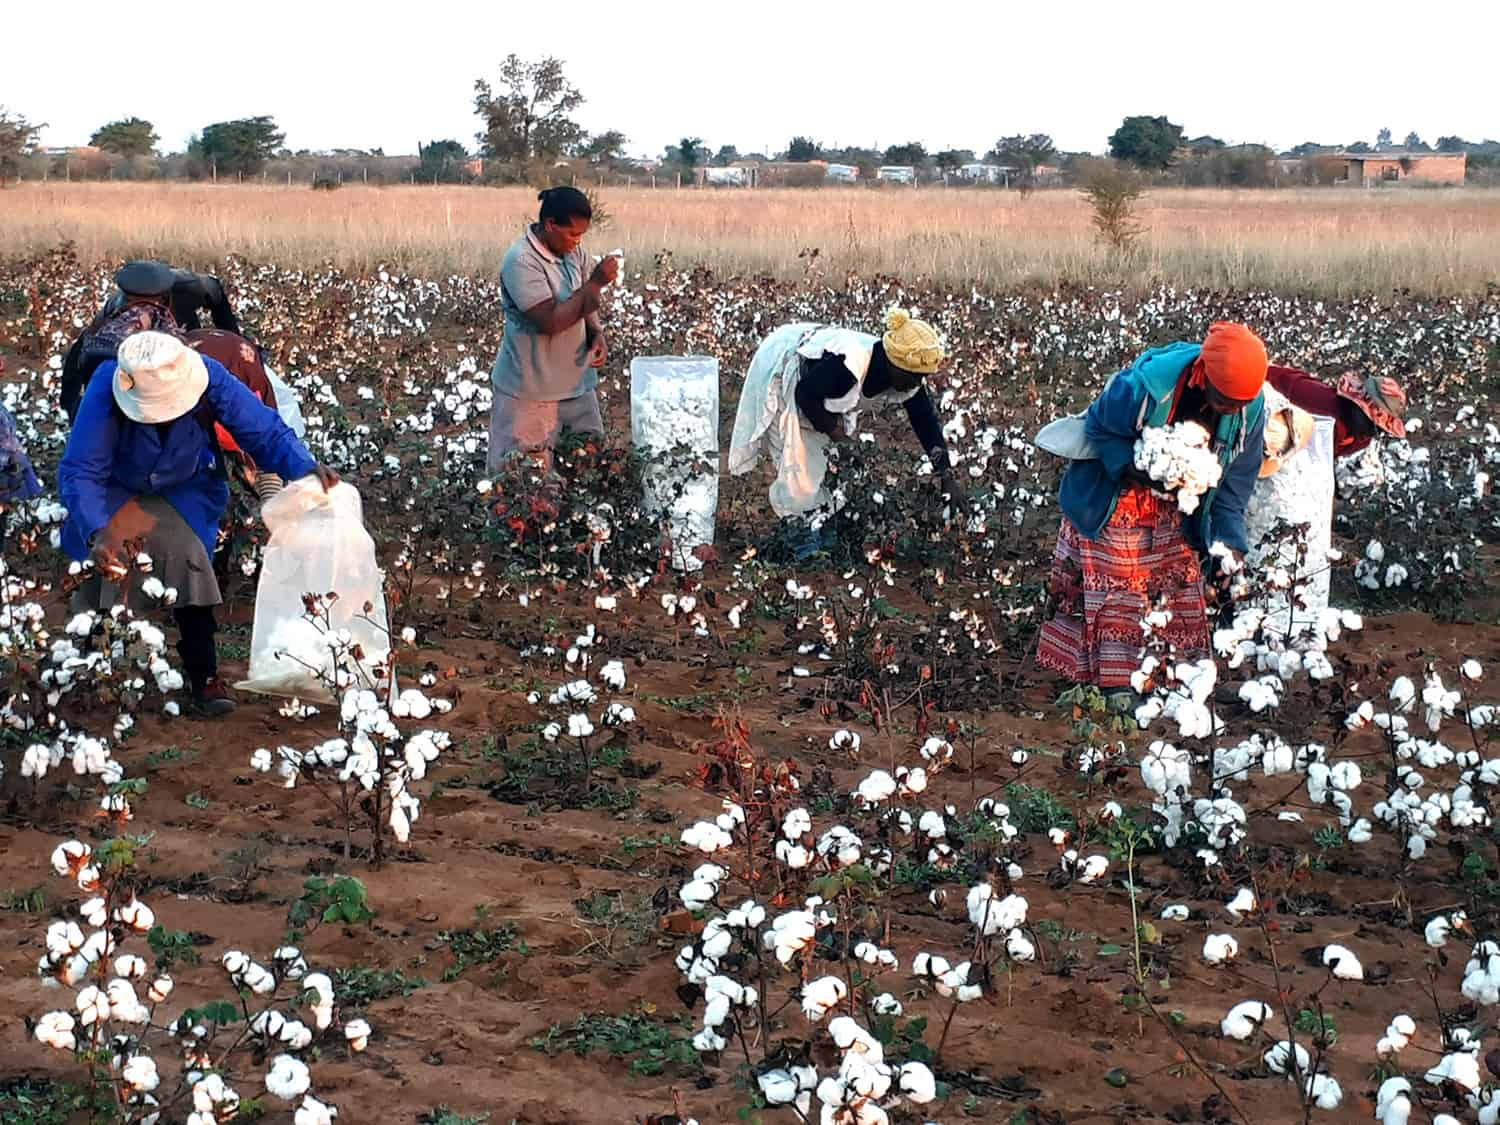 During the 2017/2018 season, five cotton projects involving 1 300 small farmers were supported as part of the Sustainable Cotton Cluster (SCC) programme.